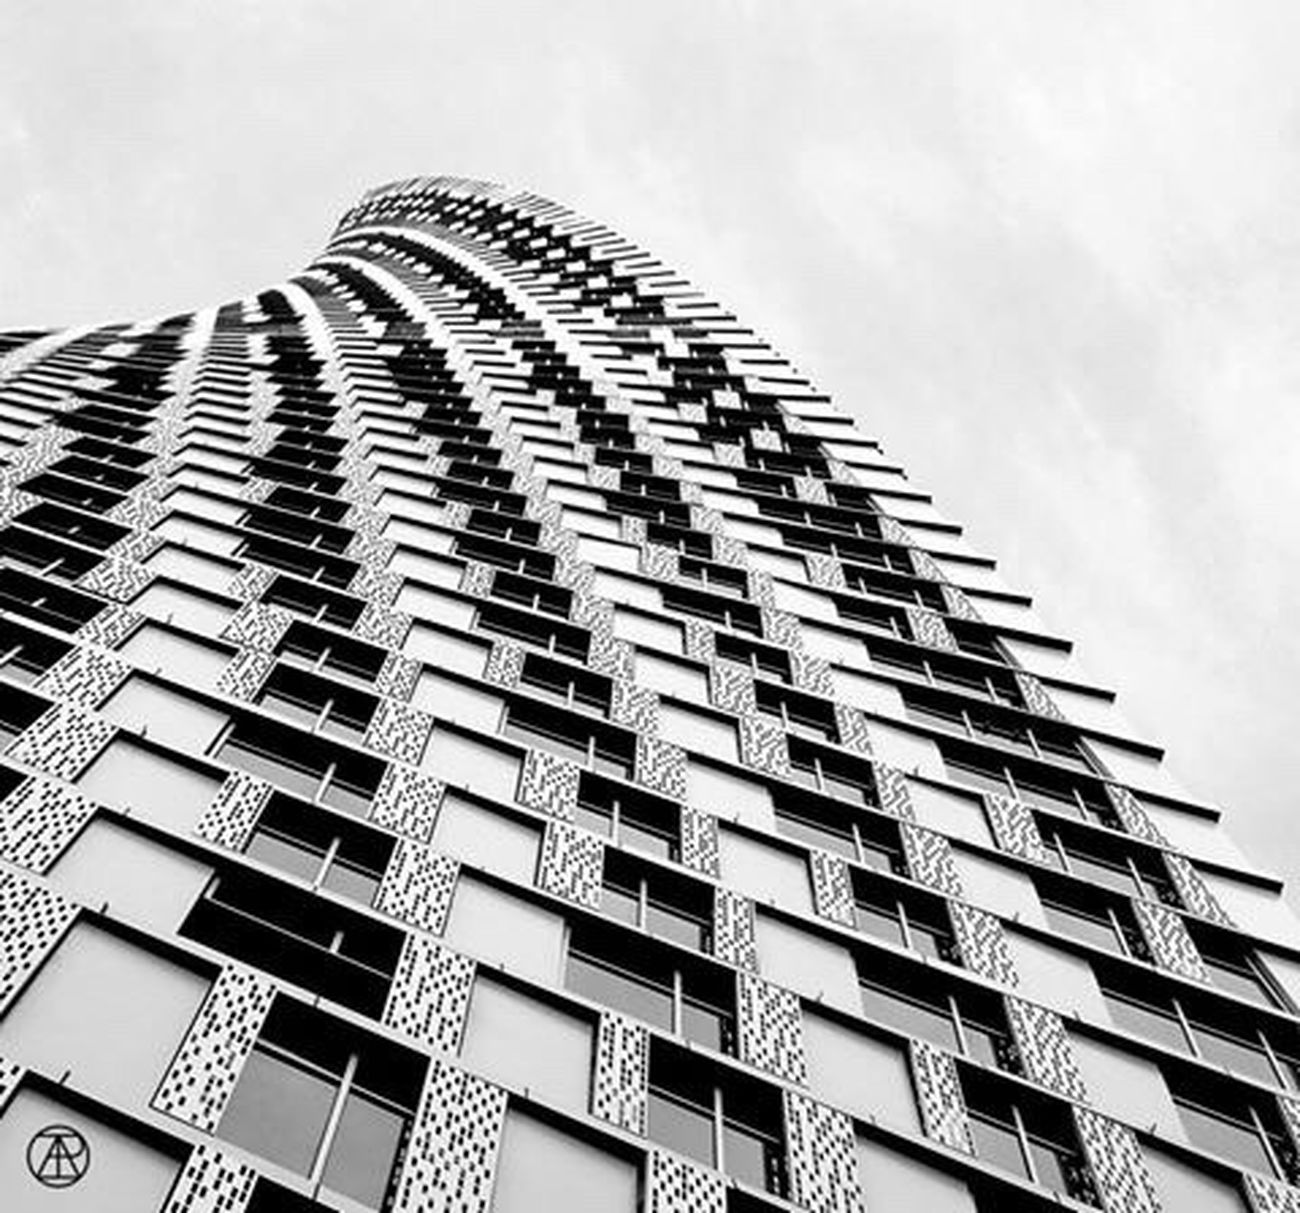 Geometric Shapes Cayantower Building Dubai Blackandwhite The Eyeem